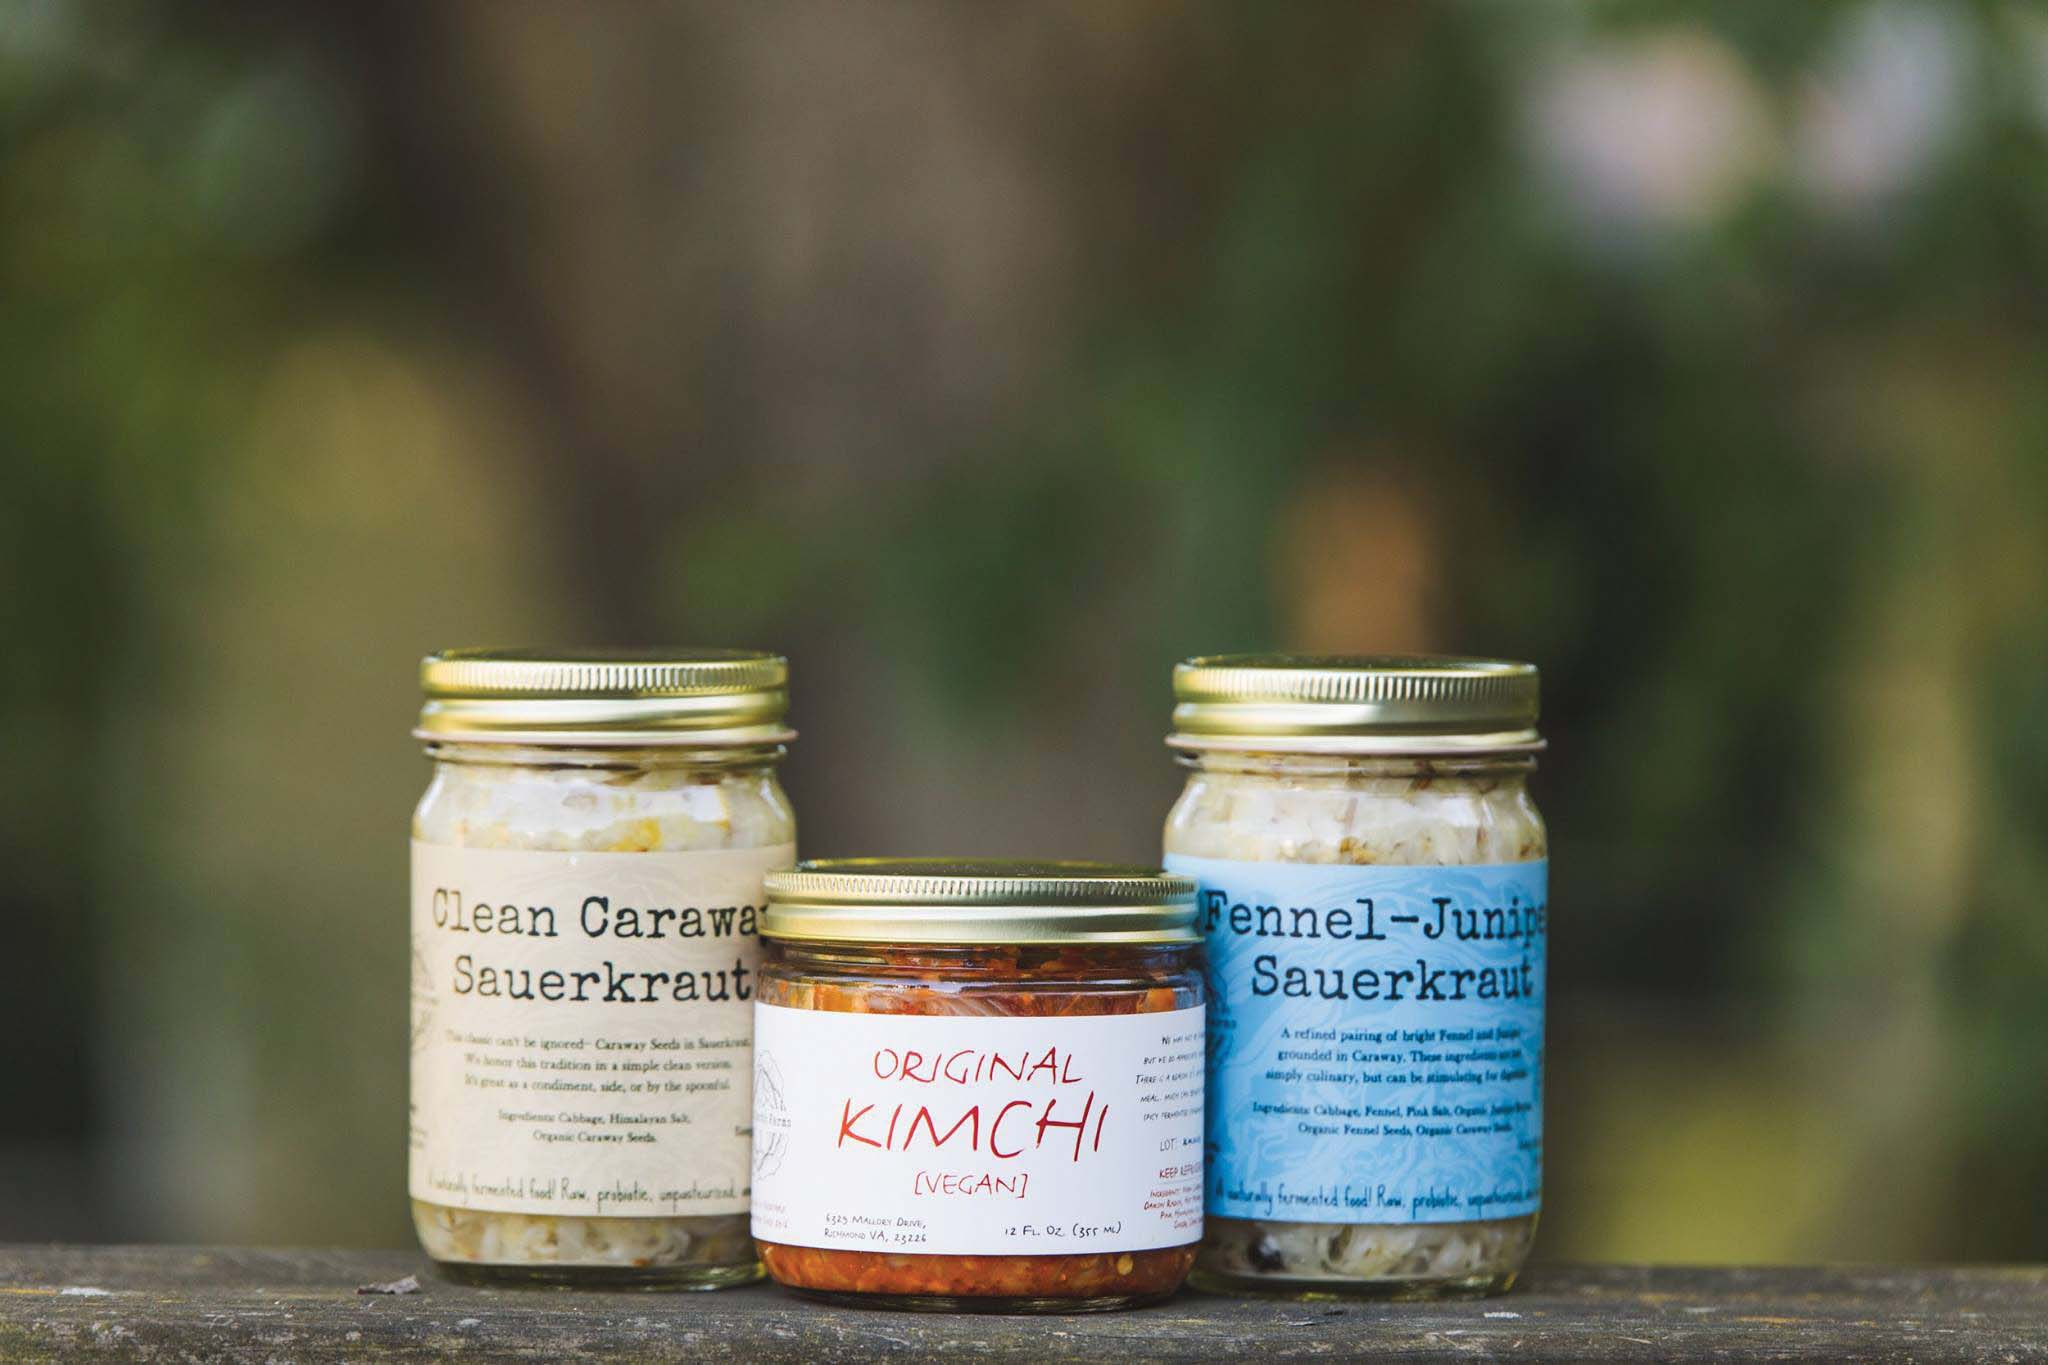 Wild Earth Fermentation kimchi and sauerkraut